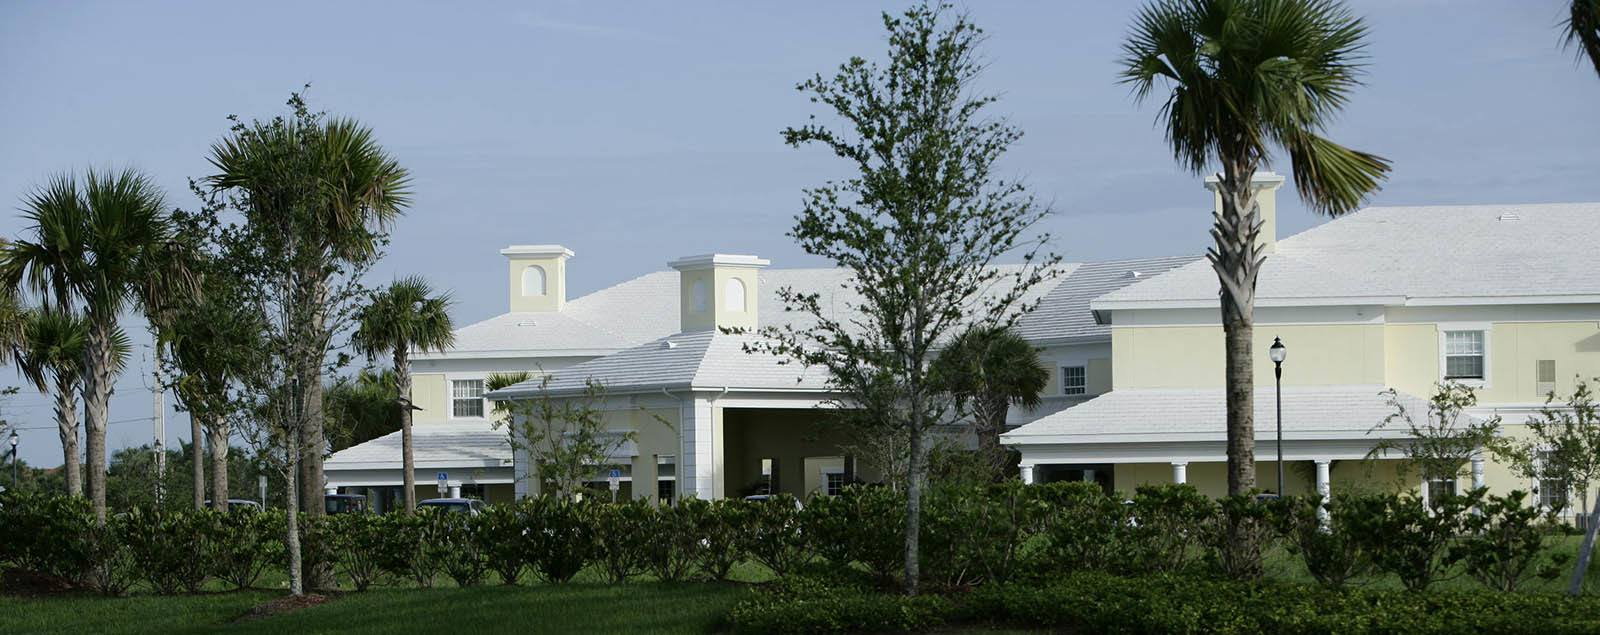 Request a Vero Beach senior living facility brochure